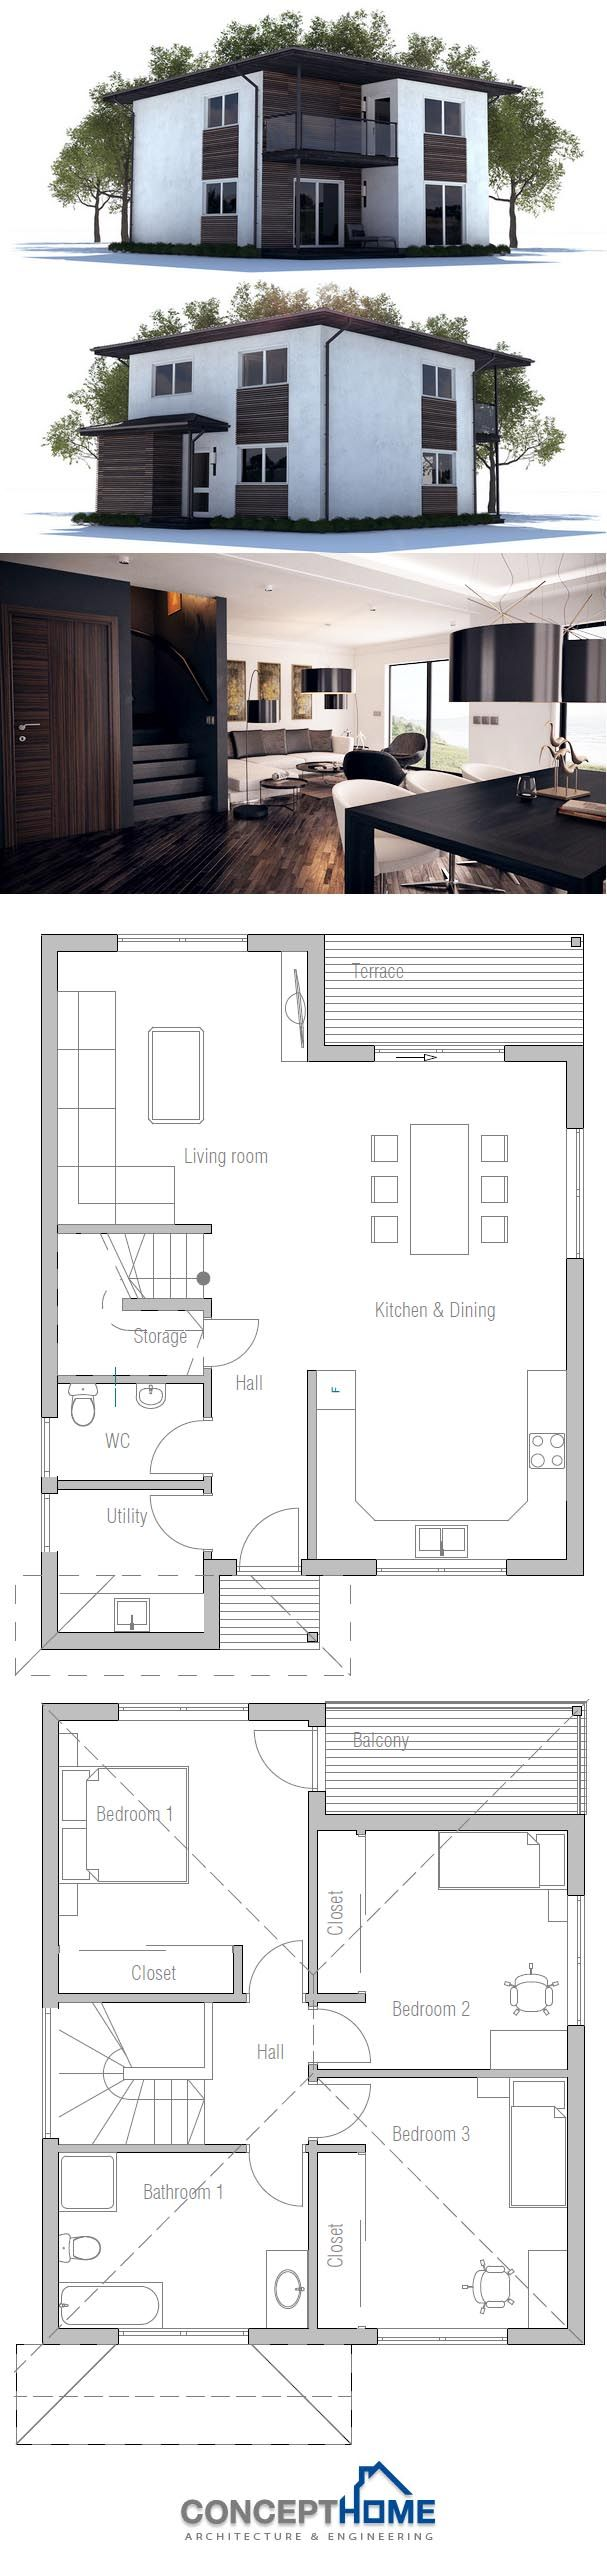 Small House Plan, AFFORDABLE TO BUILD